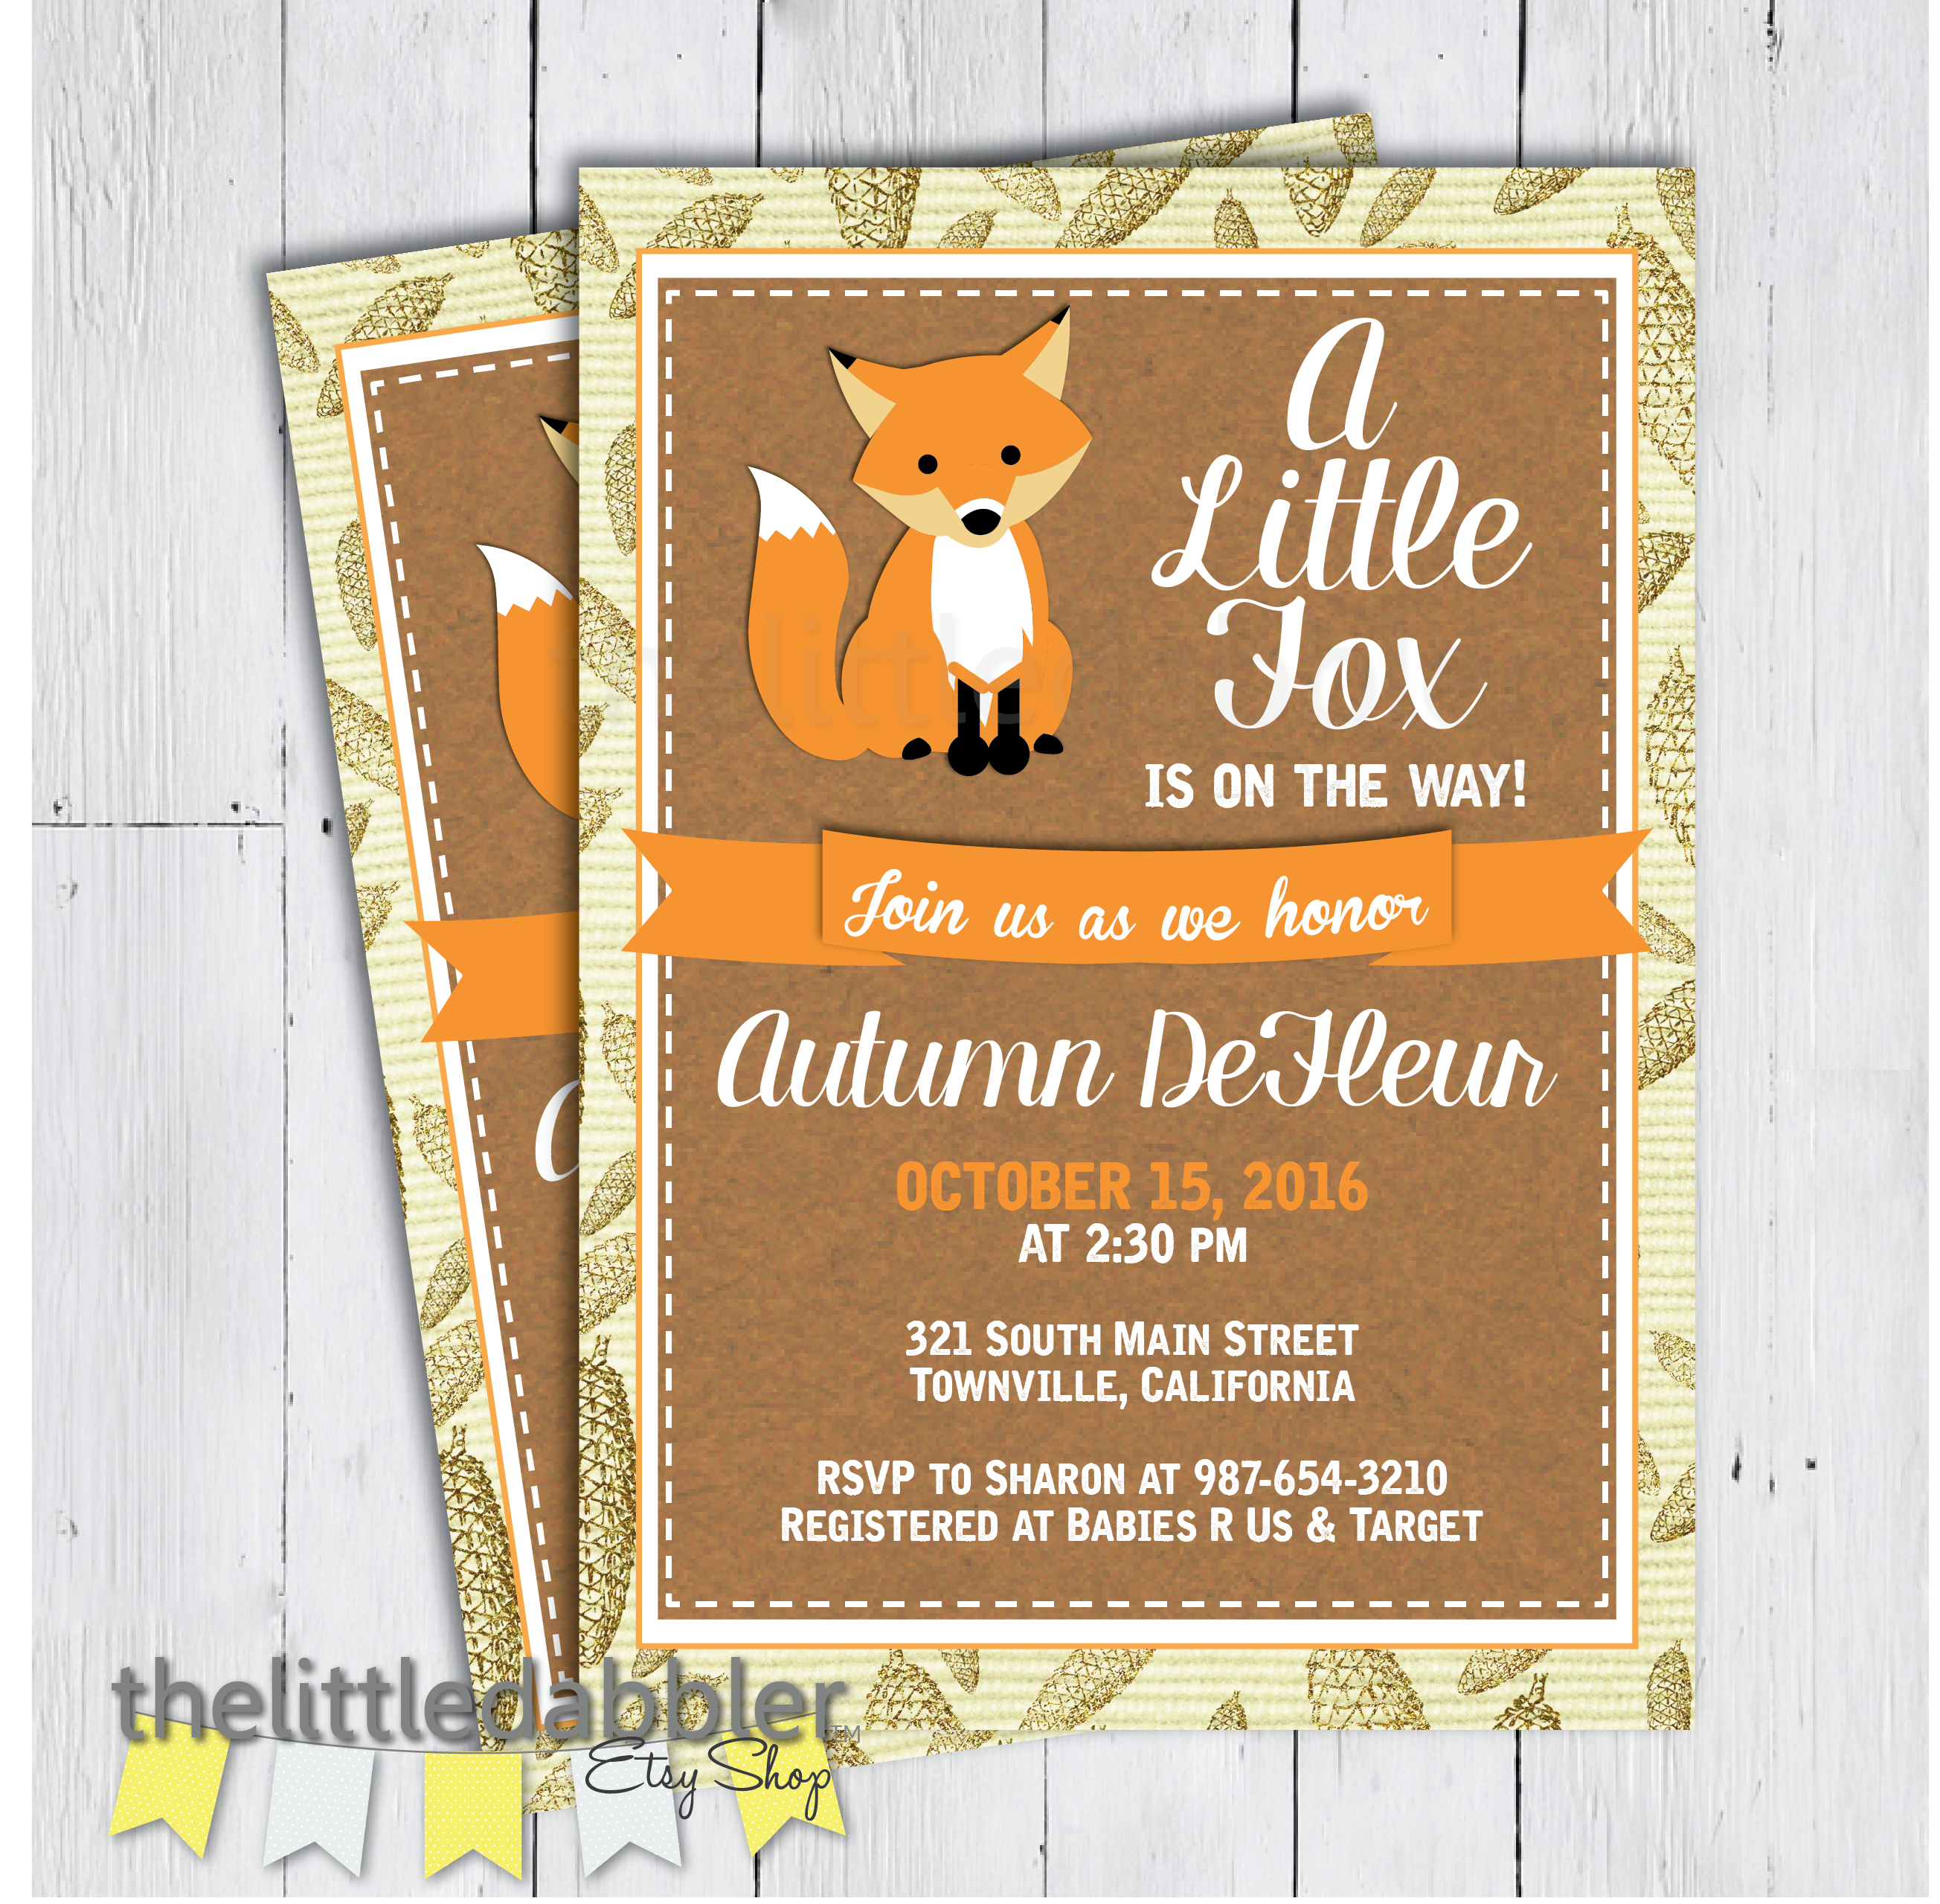 Fall Baby Shower Invitation from TheLittleDabbler Etsy Shop